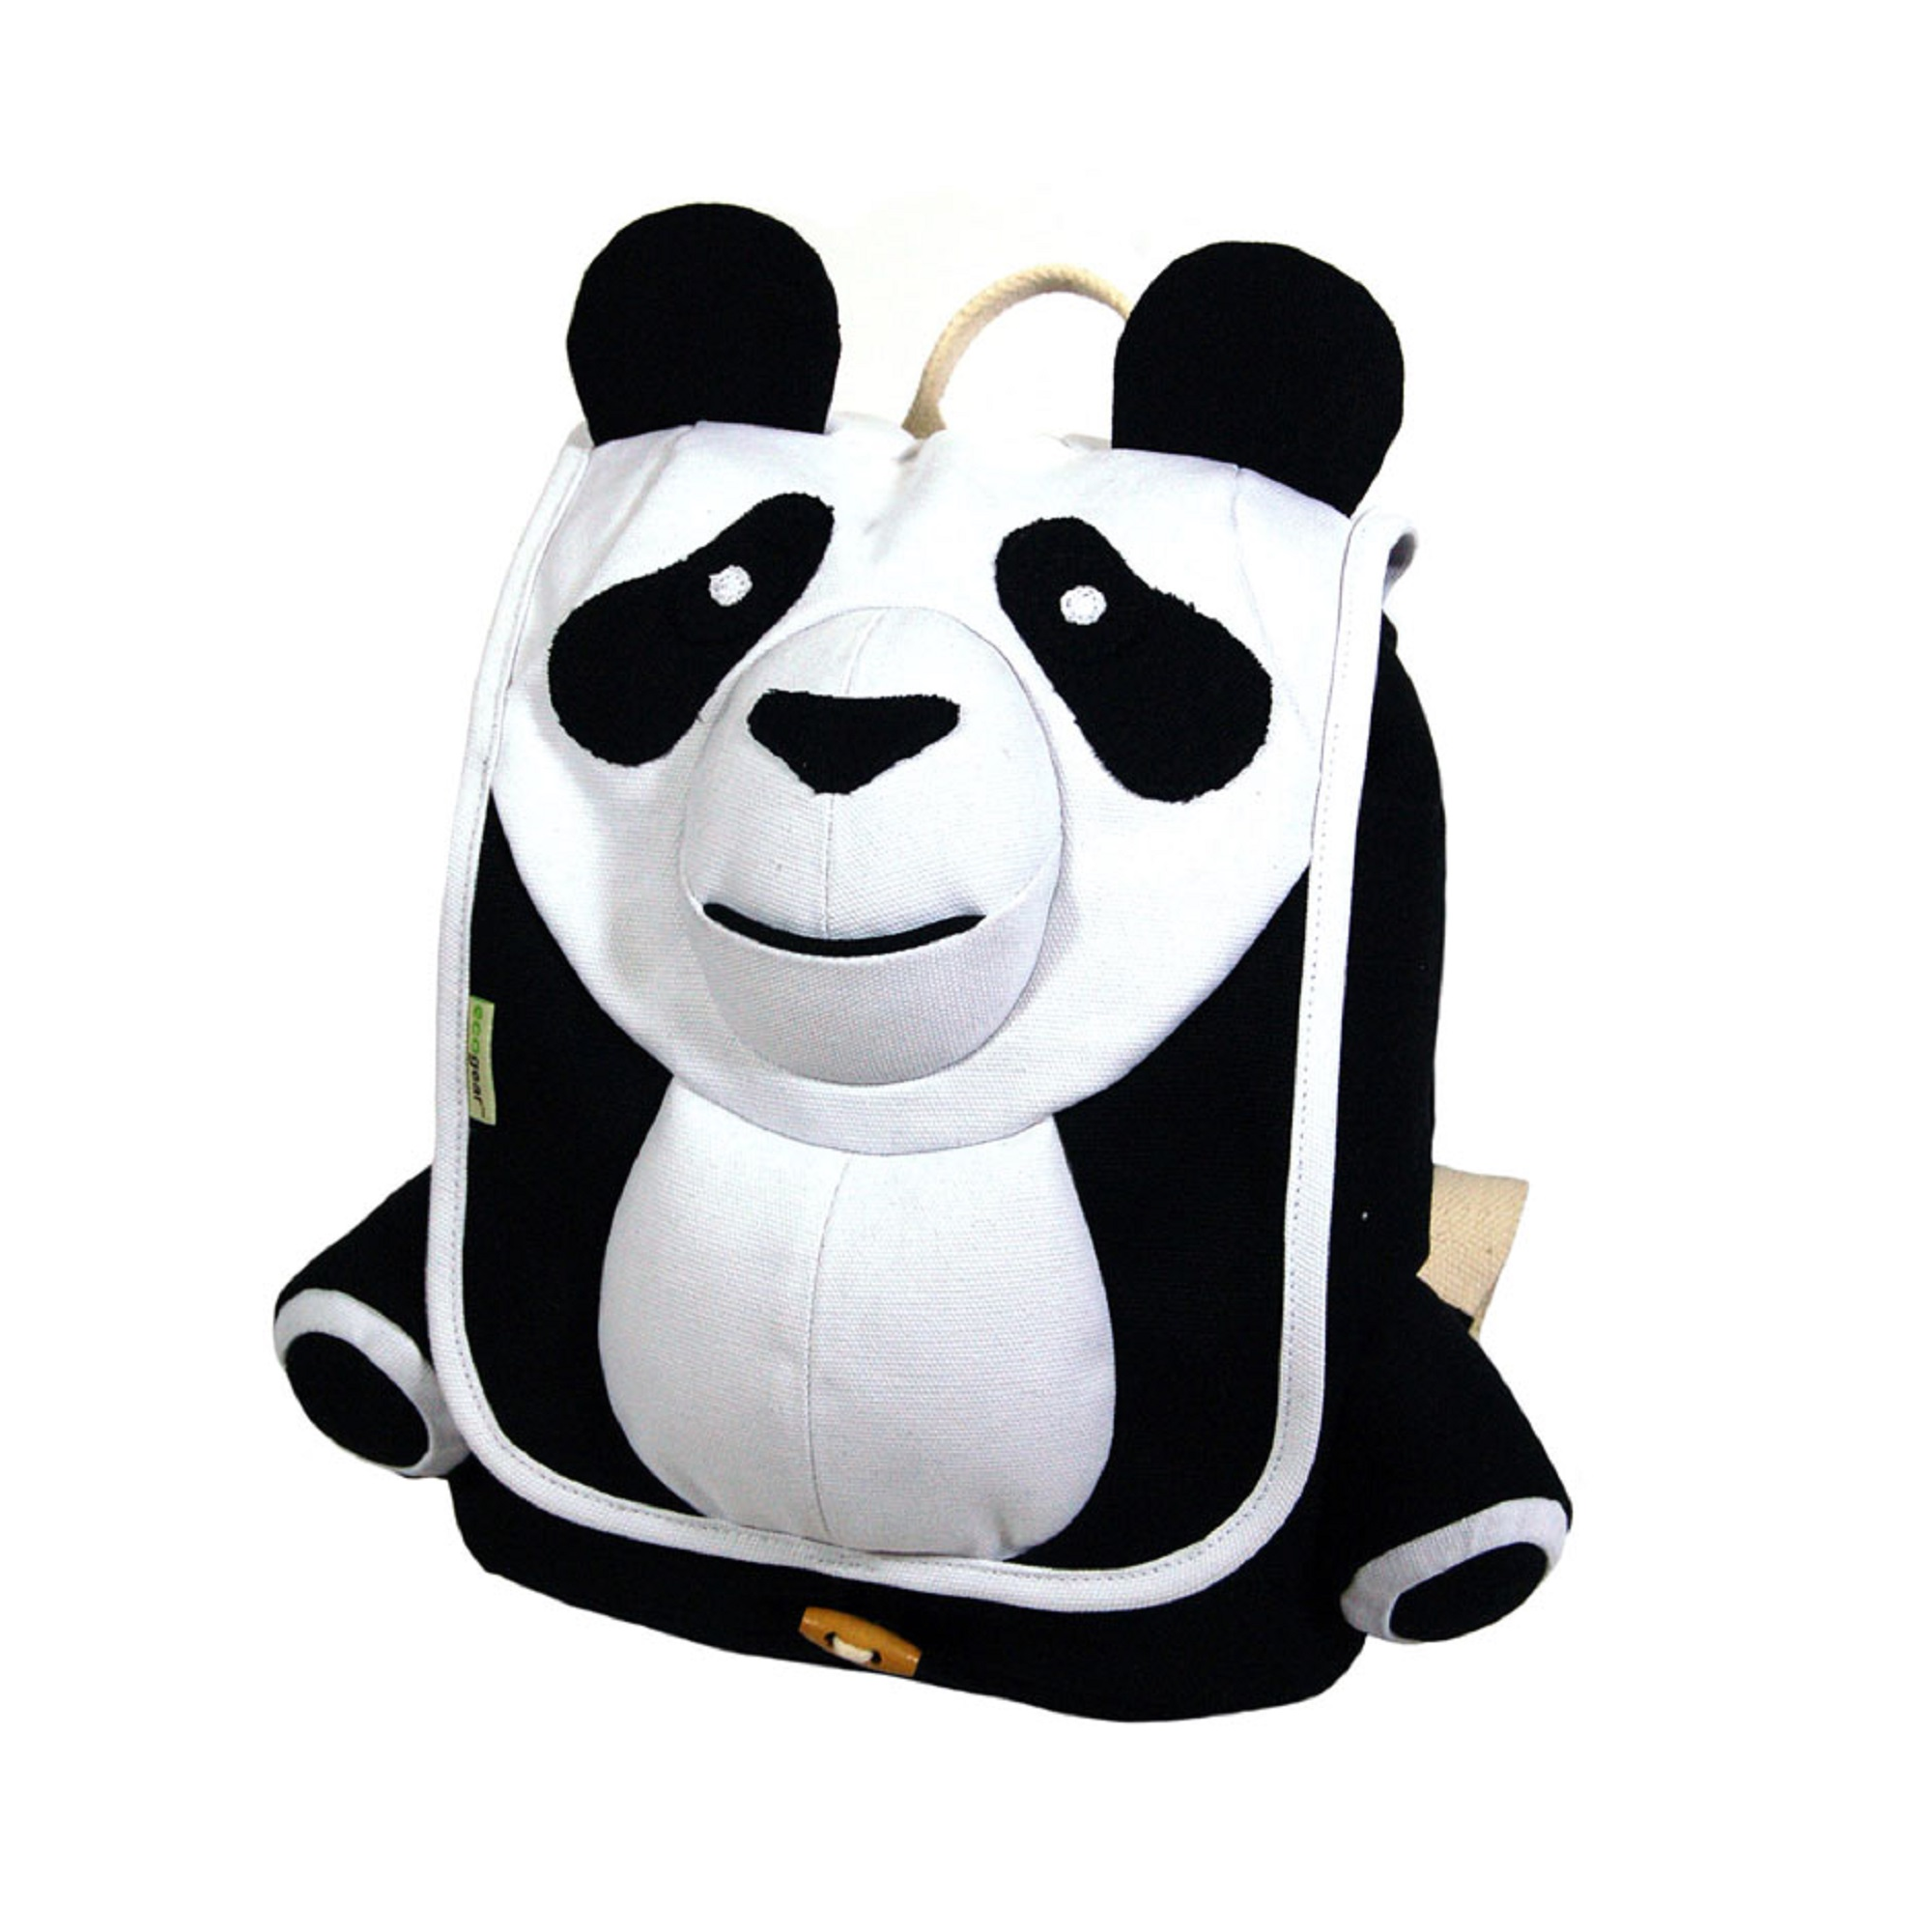 Riverstone Industries RSI RSI-2846 Ecozoo Panda Backpack